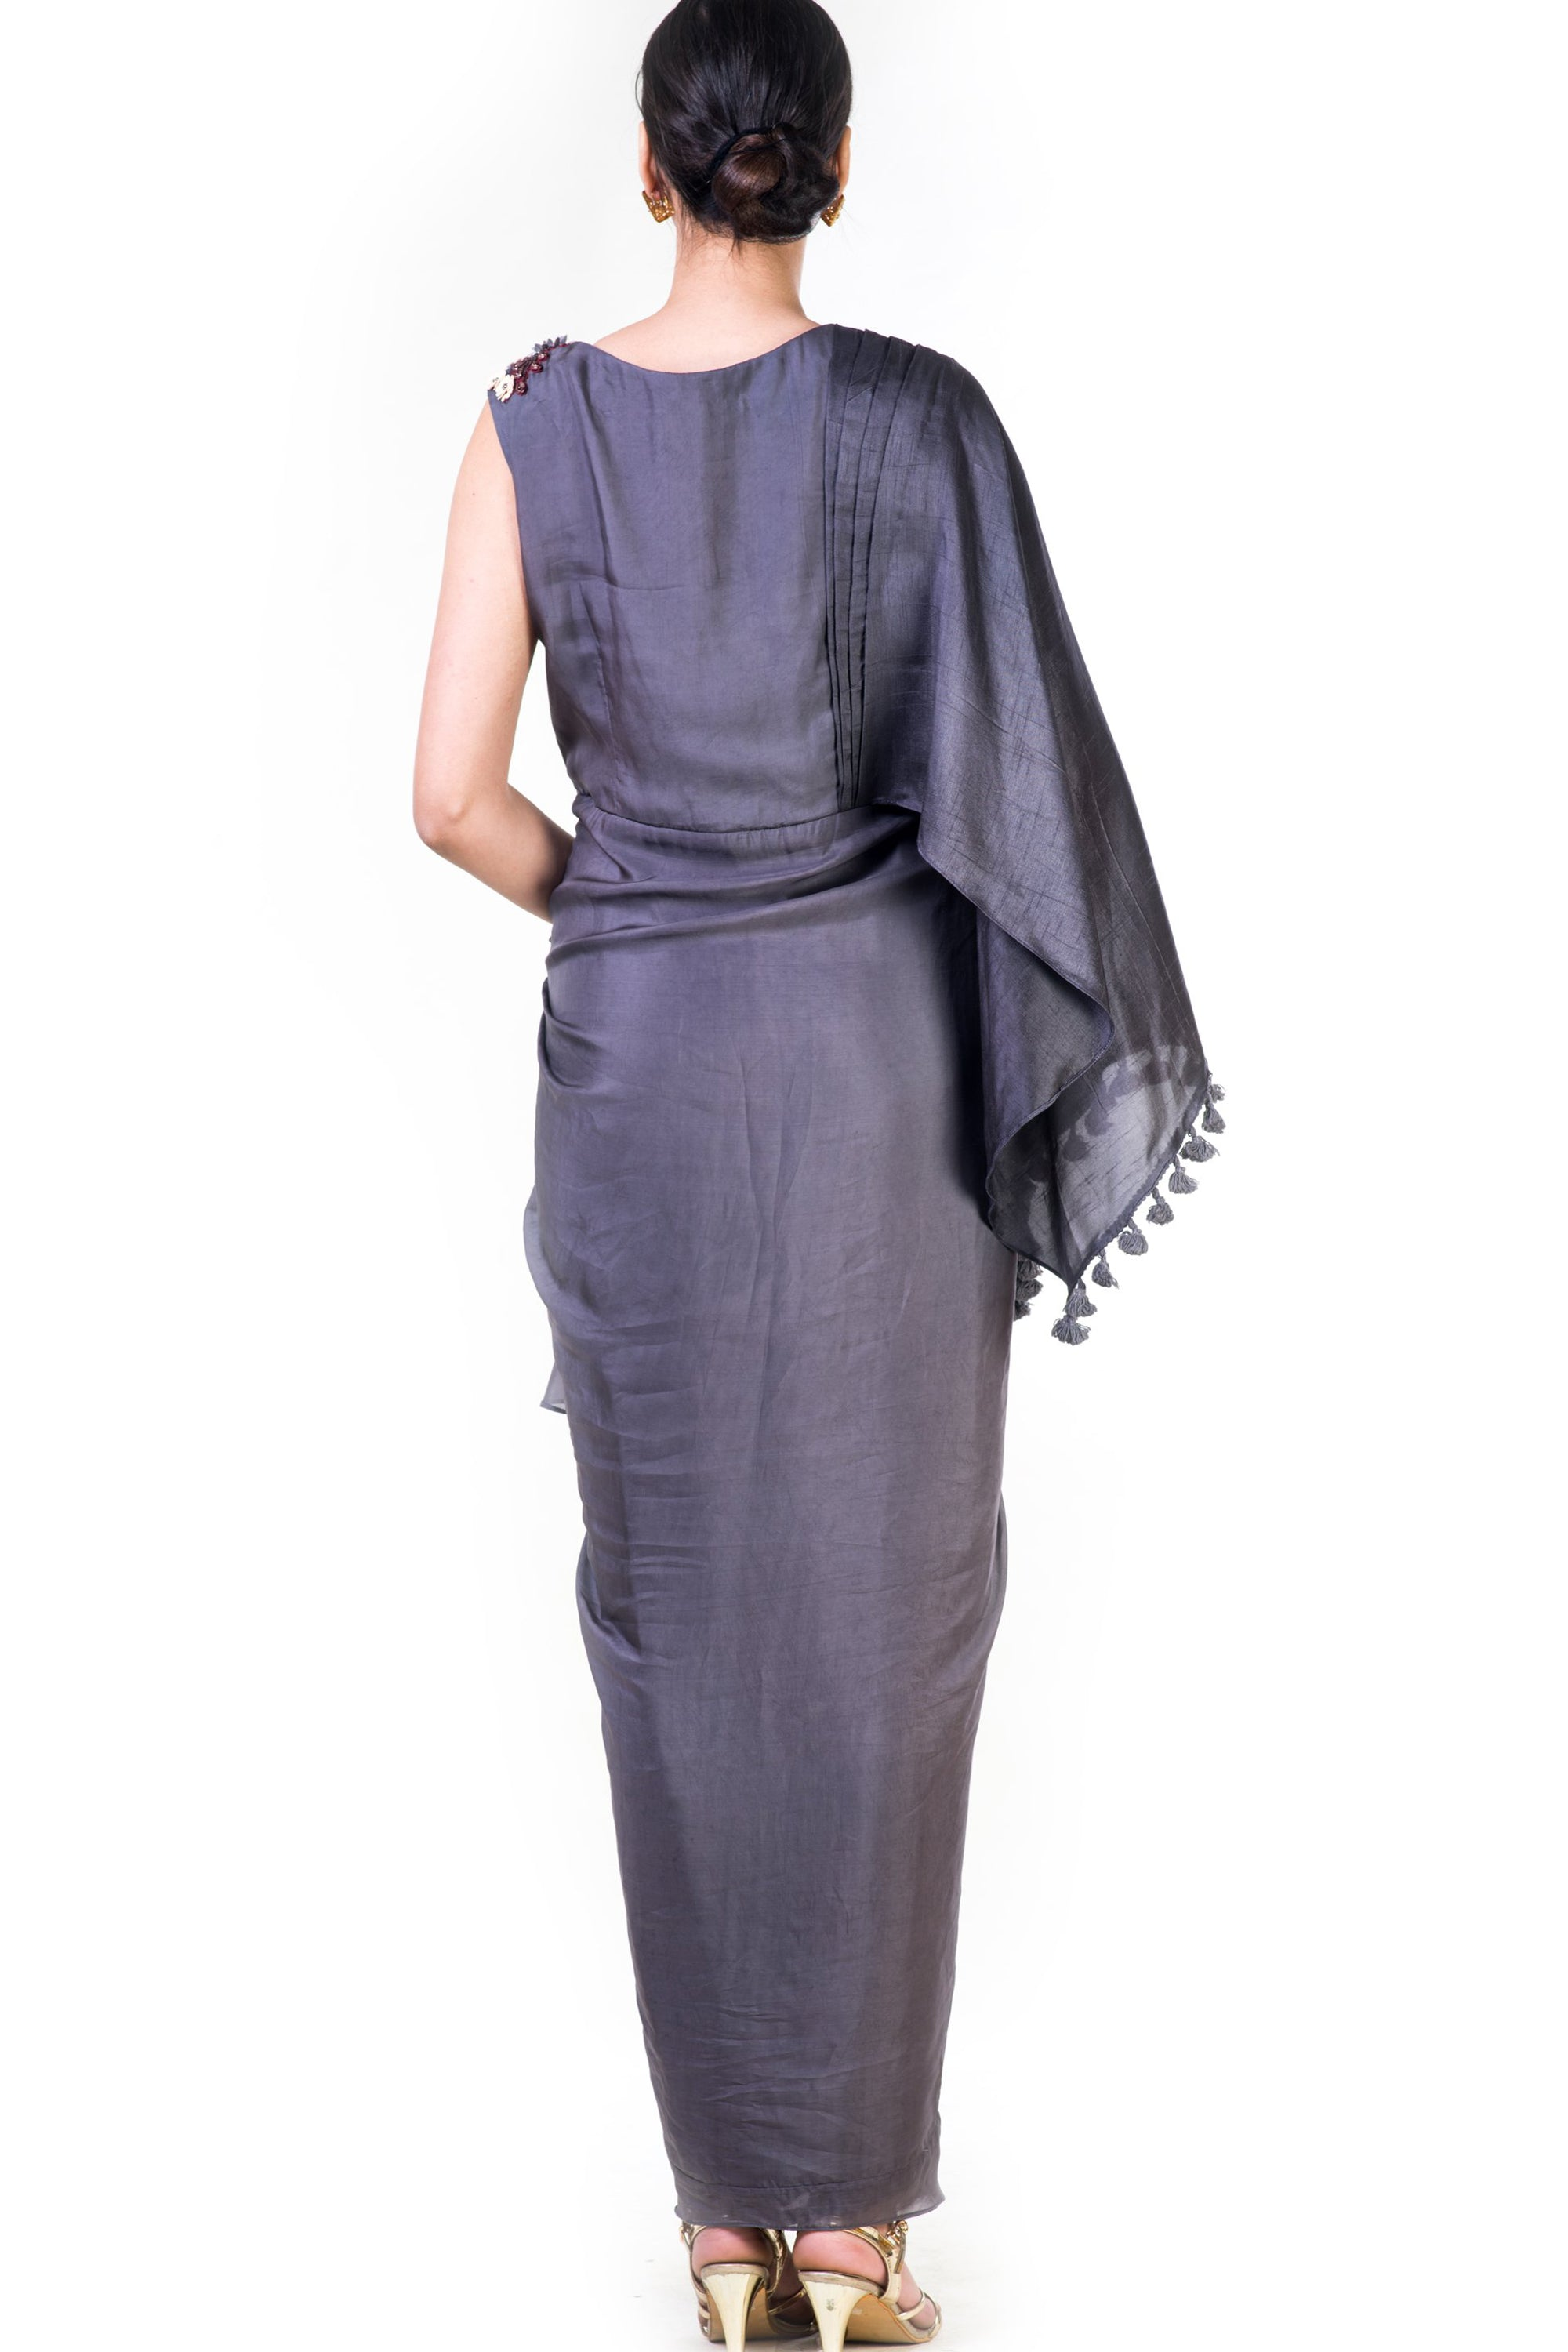 Embroidered Charcoal Grey Asymmetrical Cape Draped Gown Back